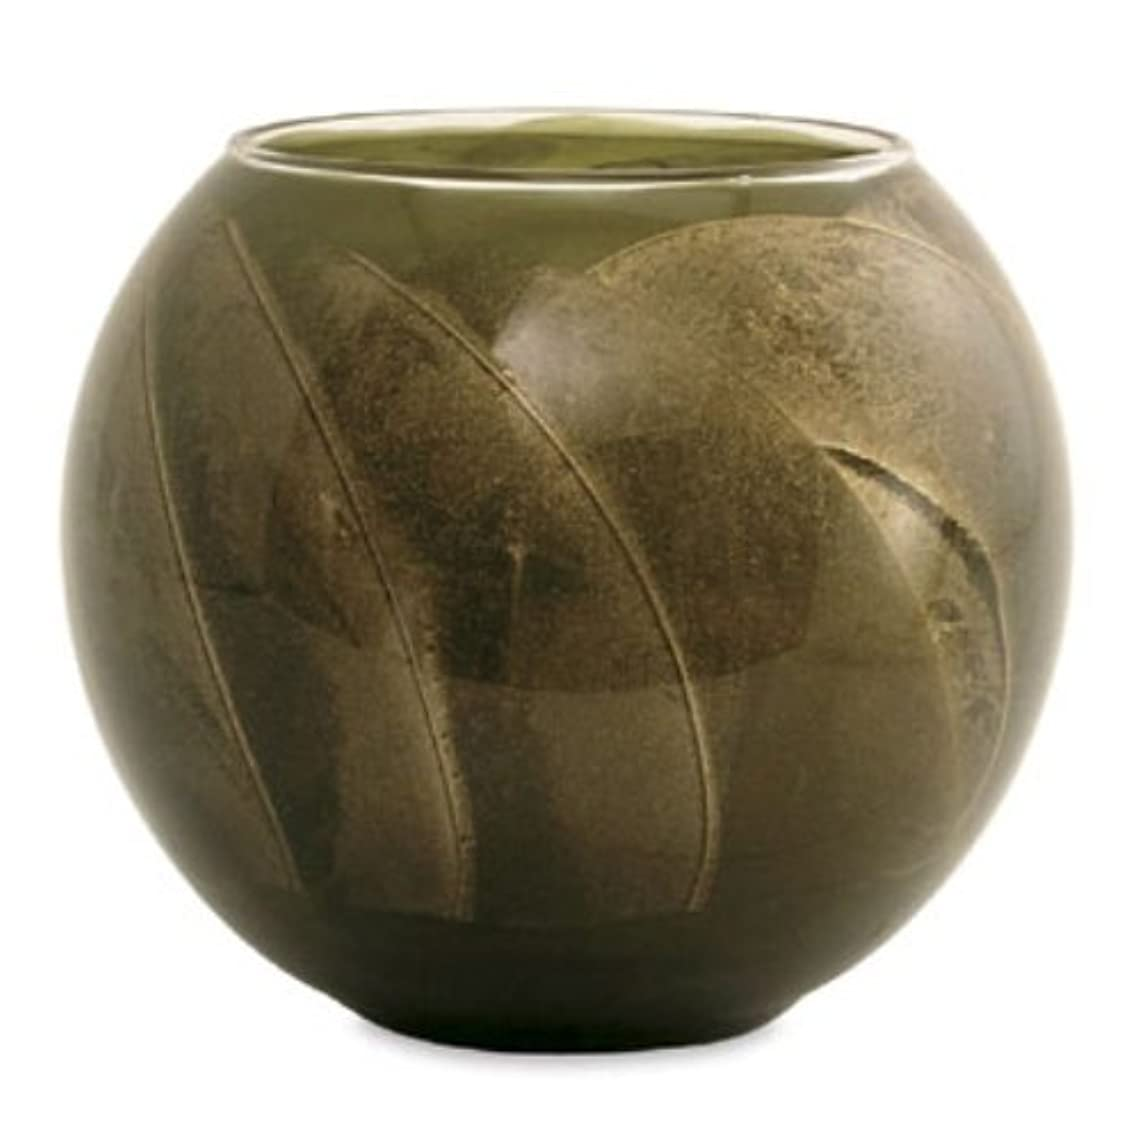 サンドイッチ脅かす案件Northern Lights Candles Esque Polished Globe - 4 inch Olive by Northern Lights Candles [並行輸入品]